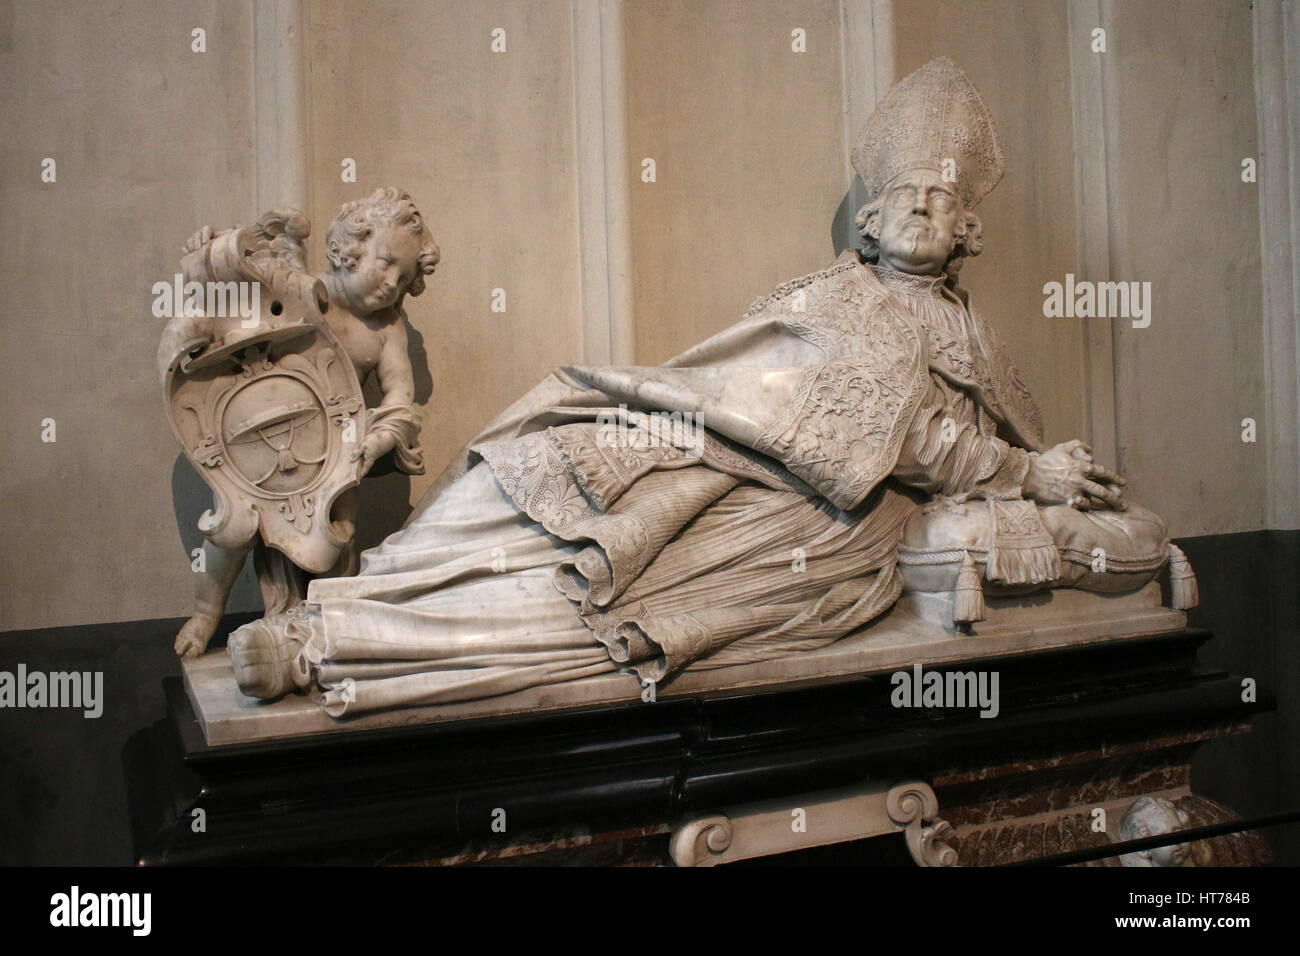 Sarcophagus of  17th century bishop Marius Ambrosius Capello by sculptor Artus Quellinus The Younger, Antwerp Cathedral, - Stock Image